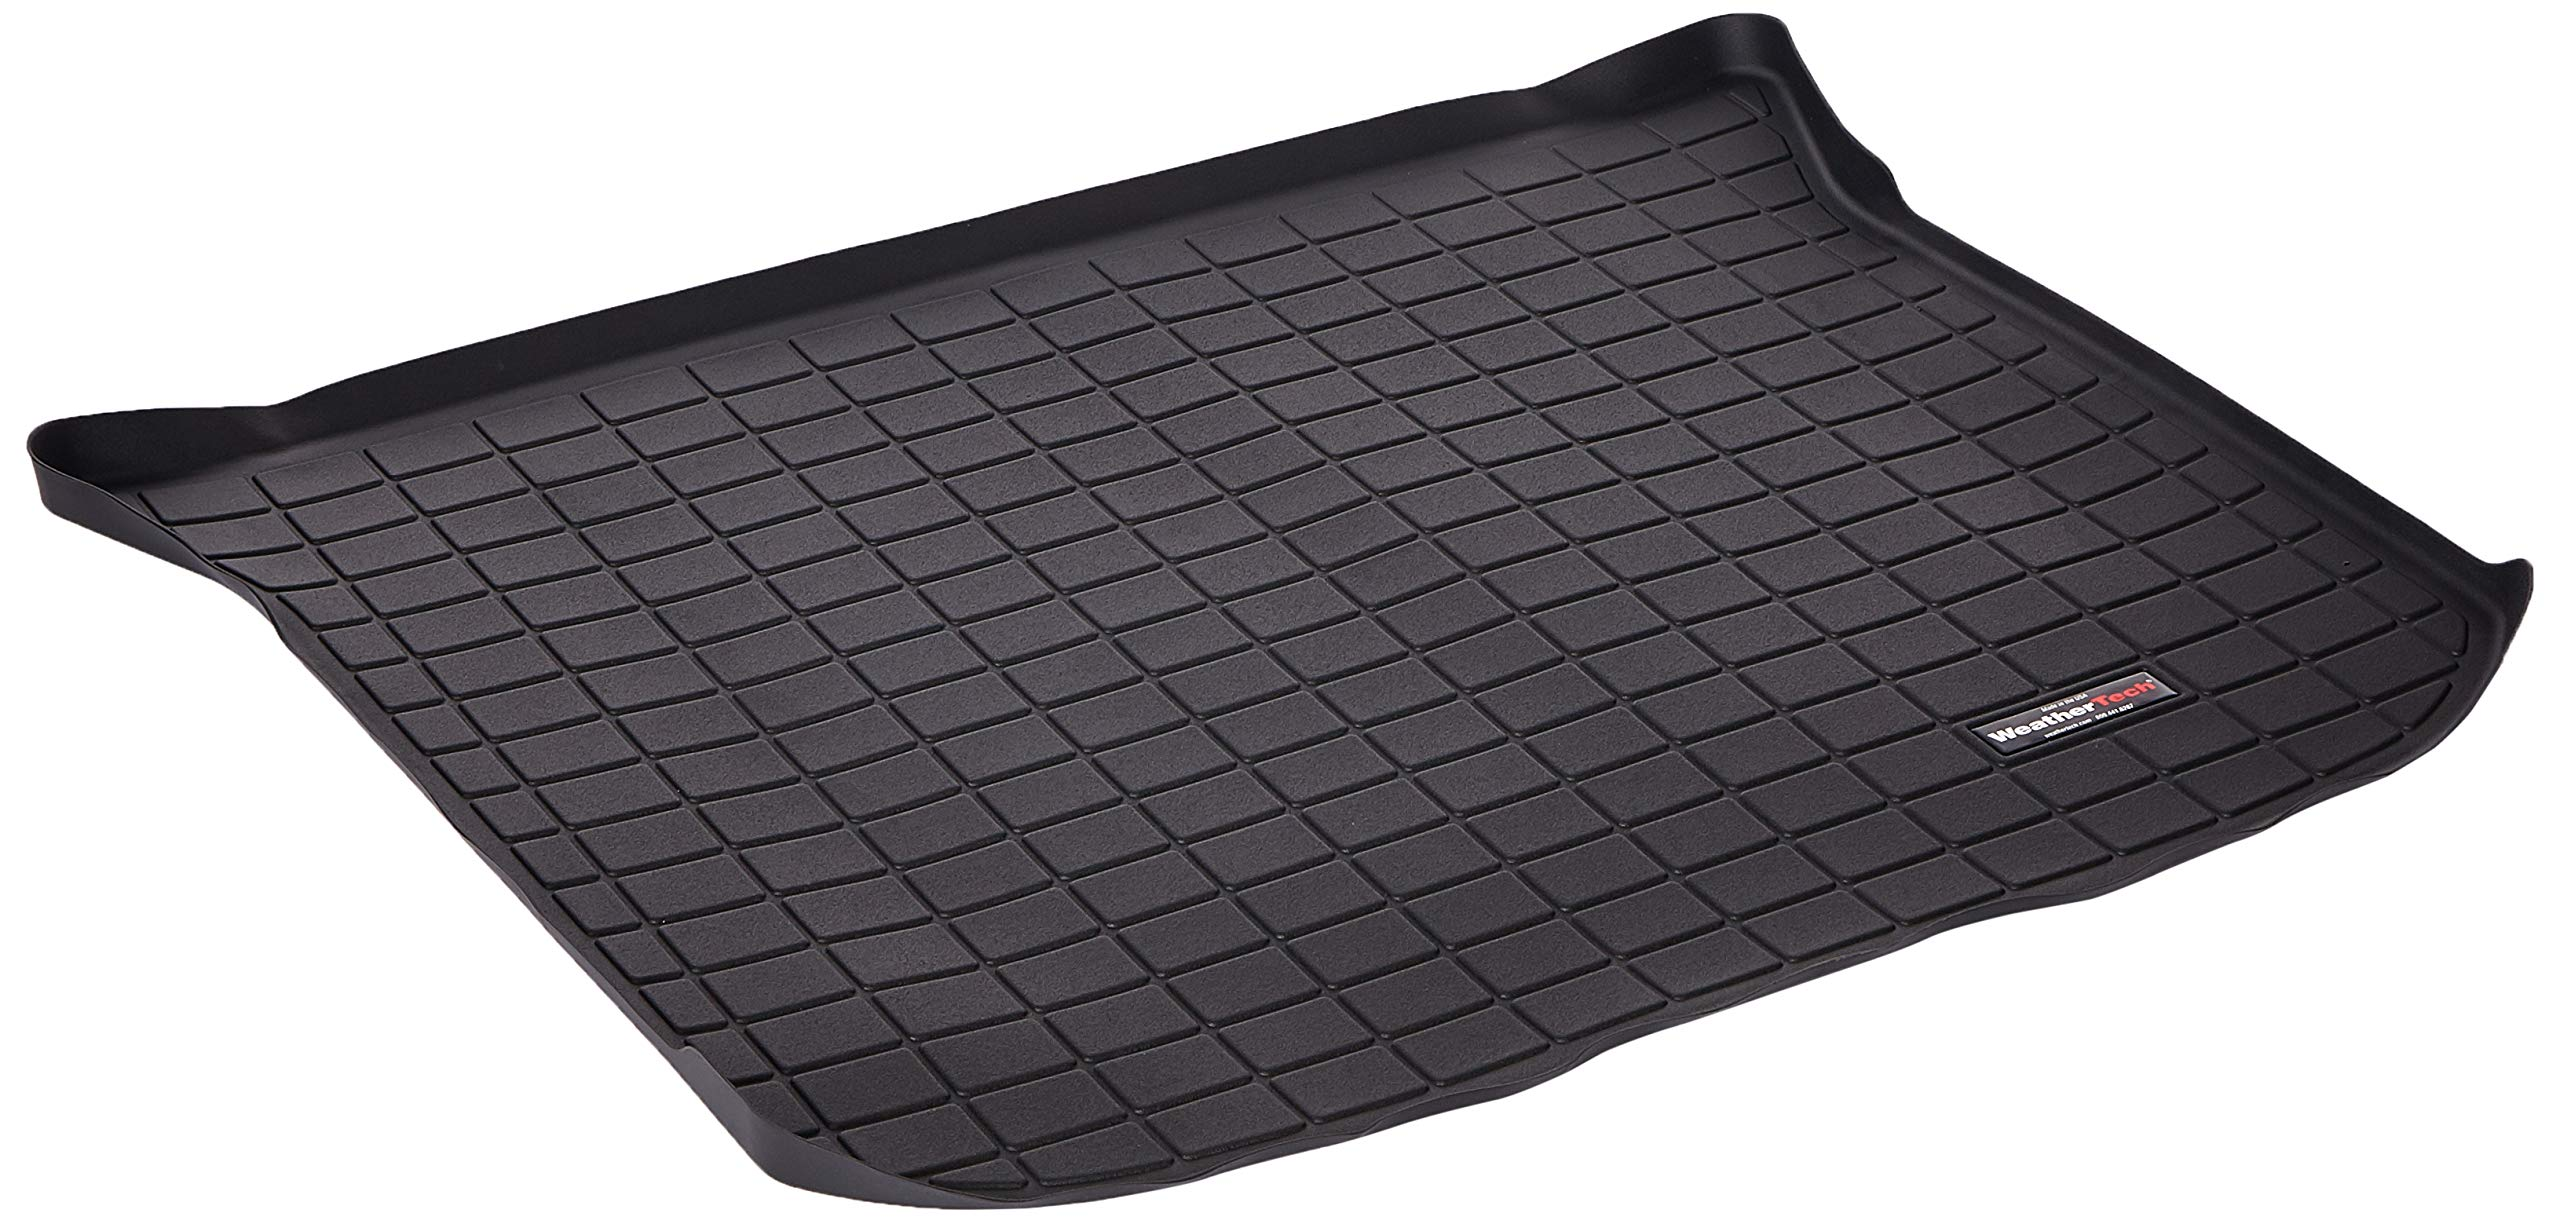 WeatherTech Custom Fit Cargo Liners for Ford Edge, Black